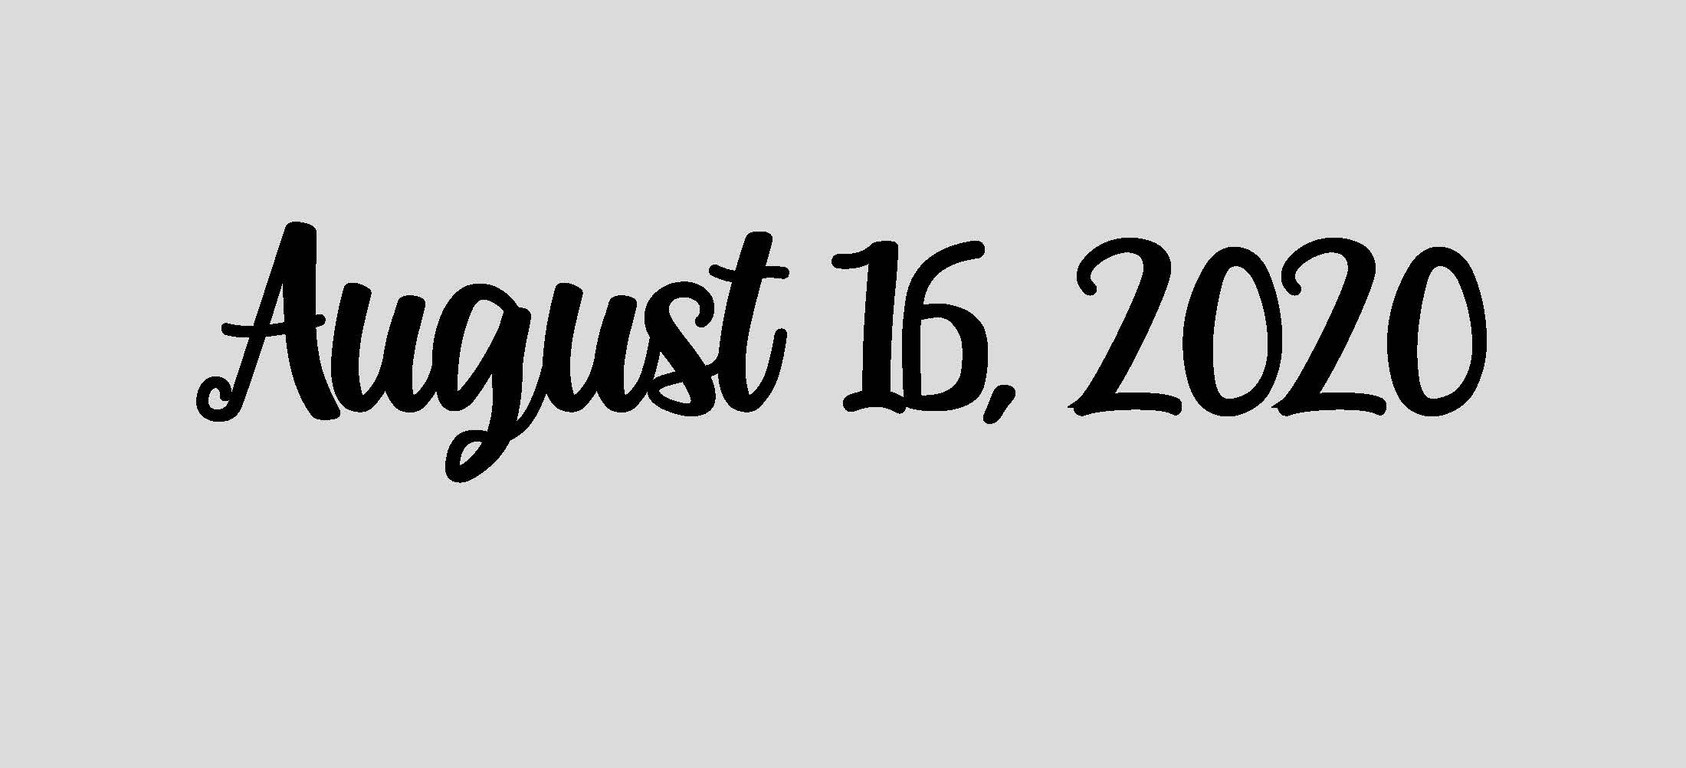 August 16, 2020